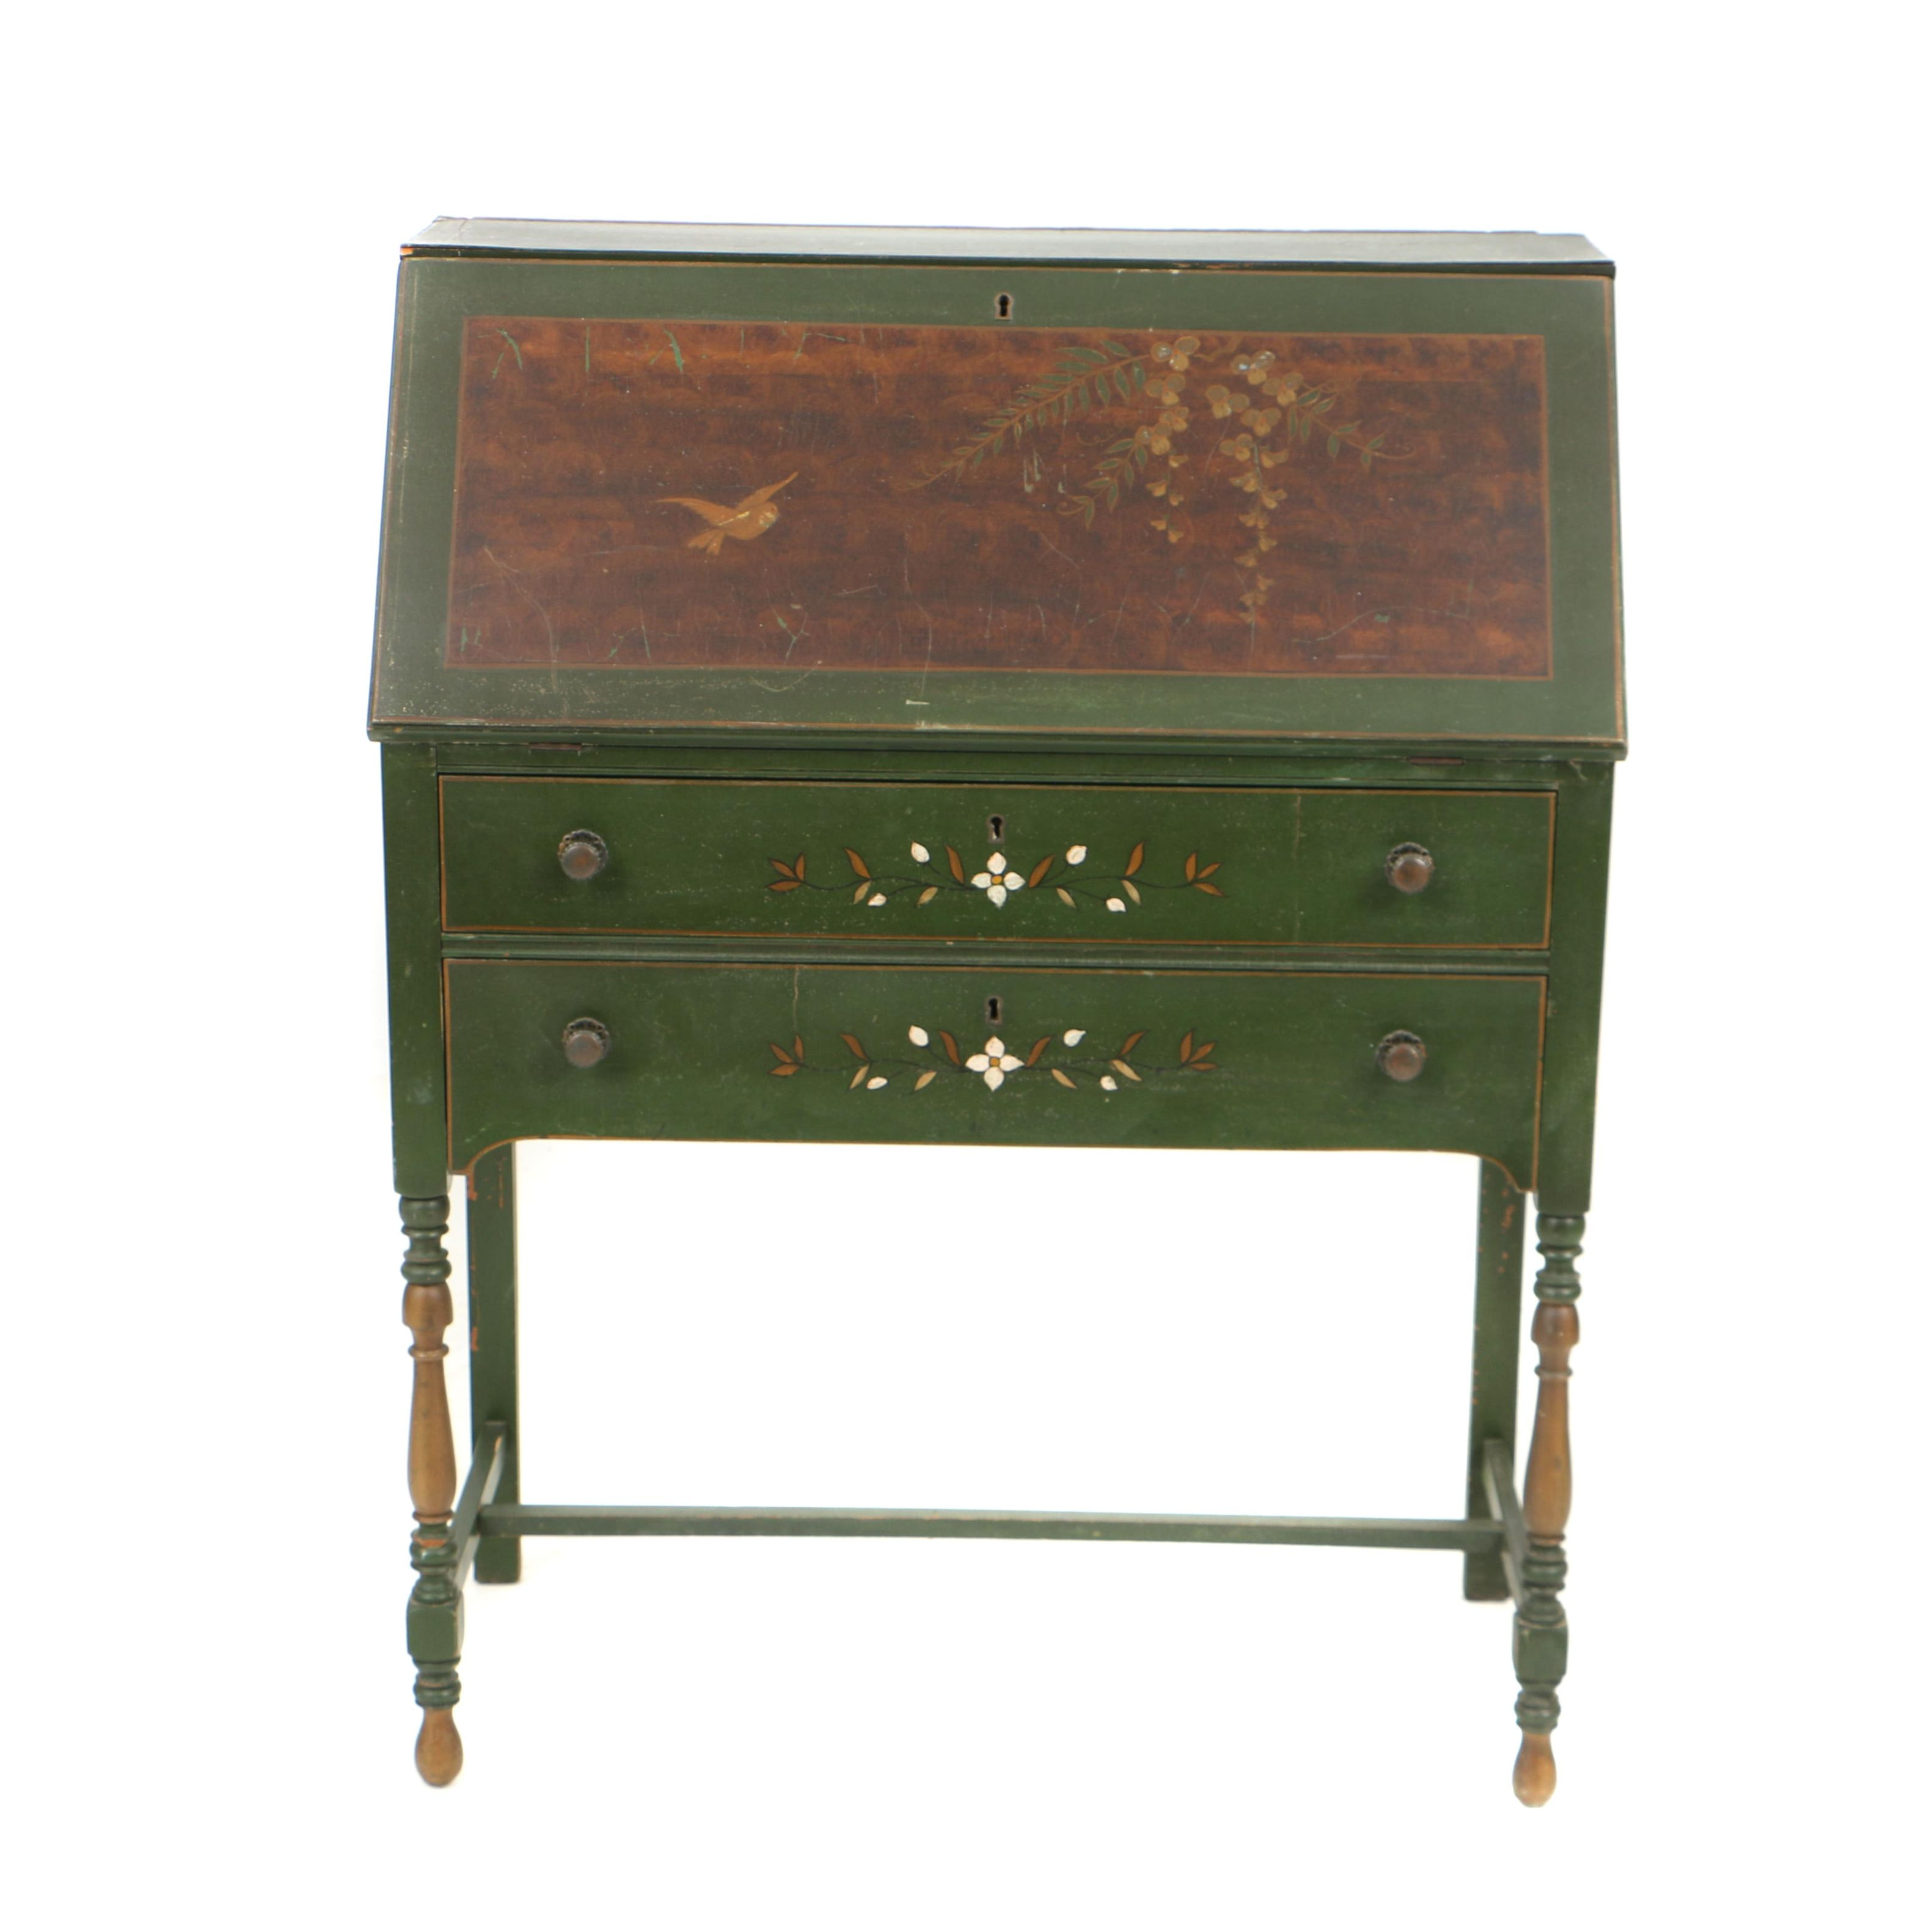 Vintage Chinoiserie-Decorated Slant-Front Desk in the William and Mary Style